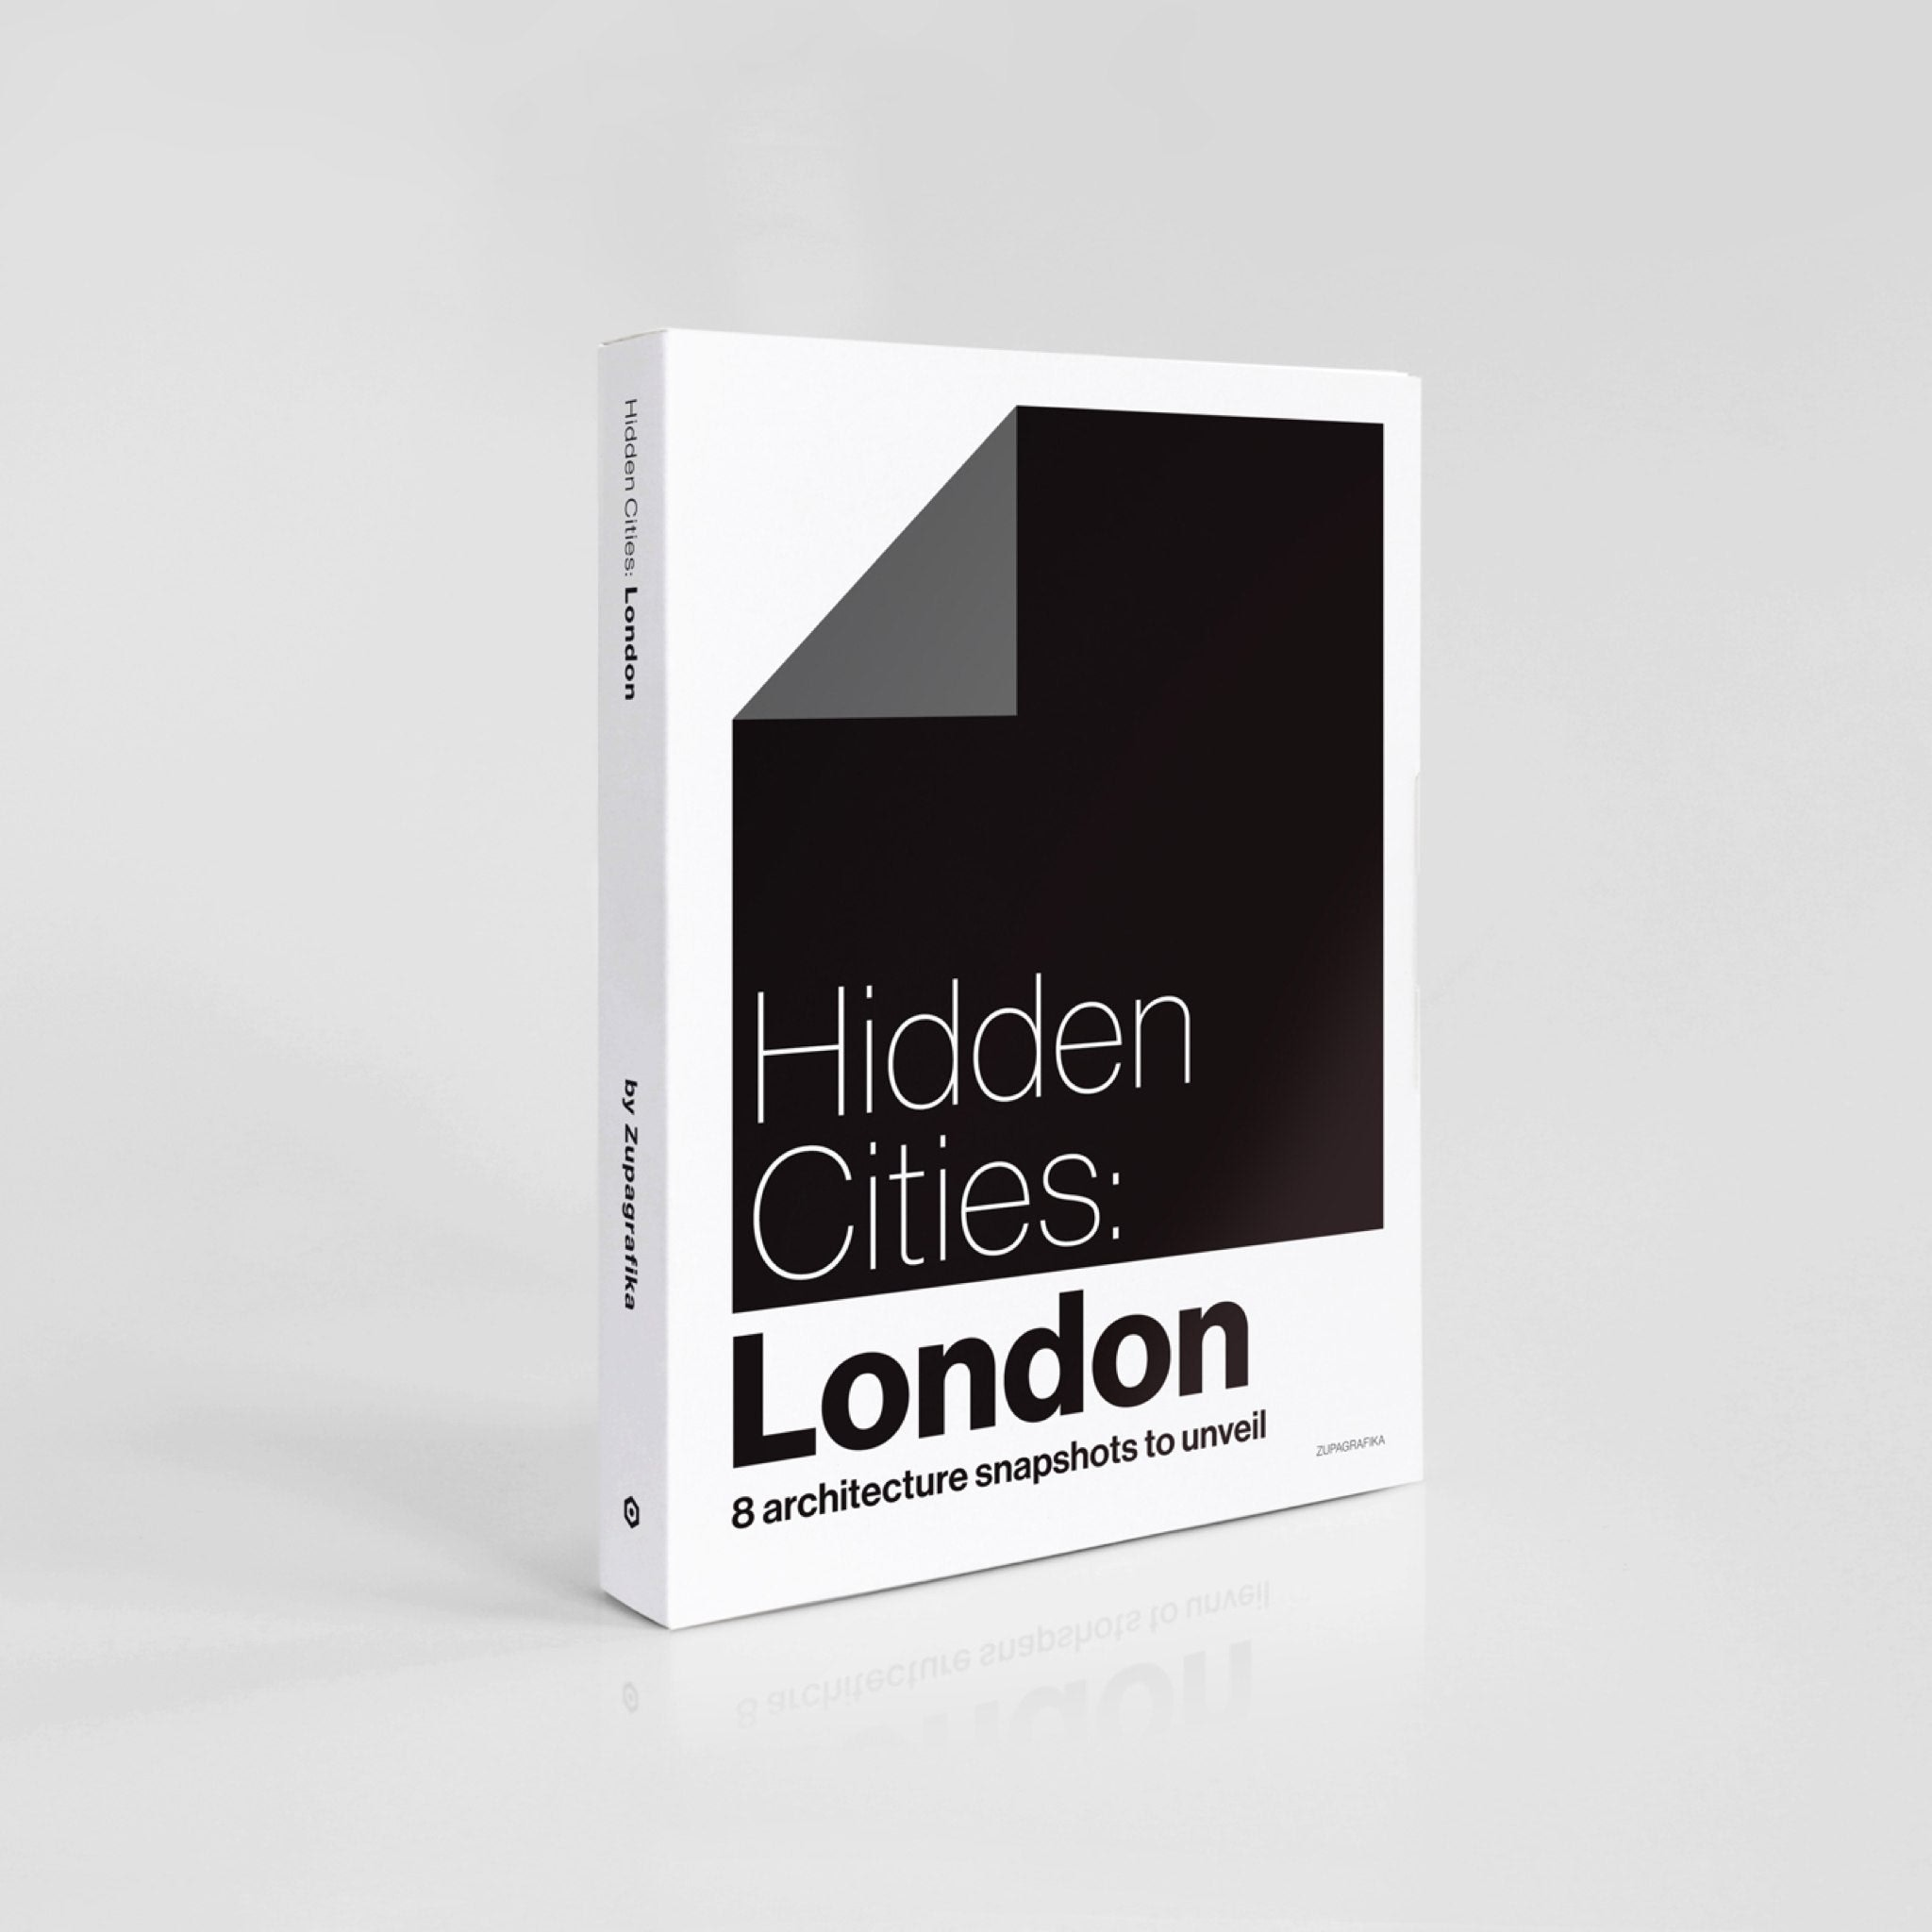 Hidden Cities: London by Zupagrafika